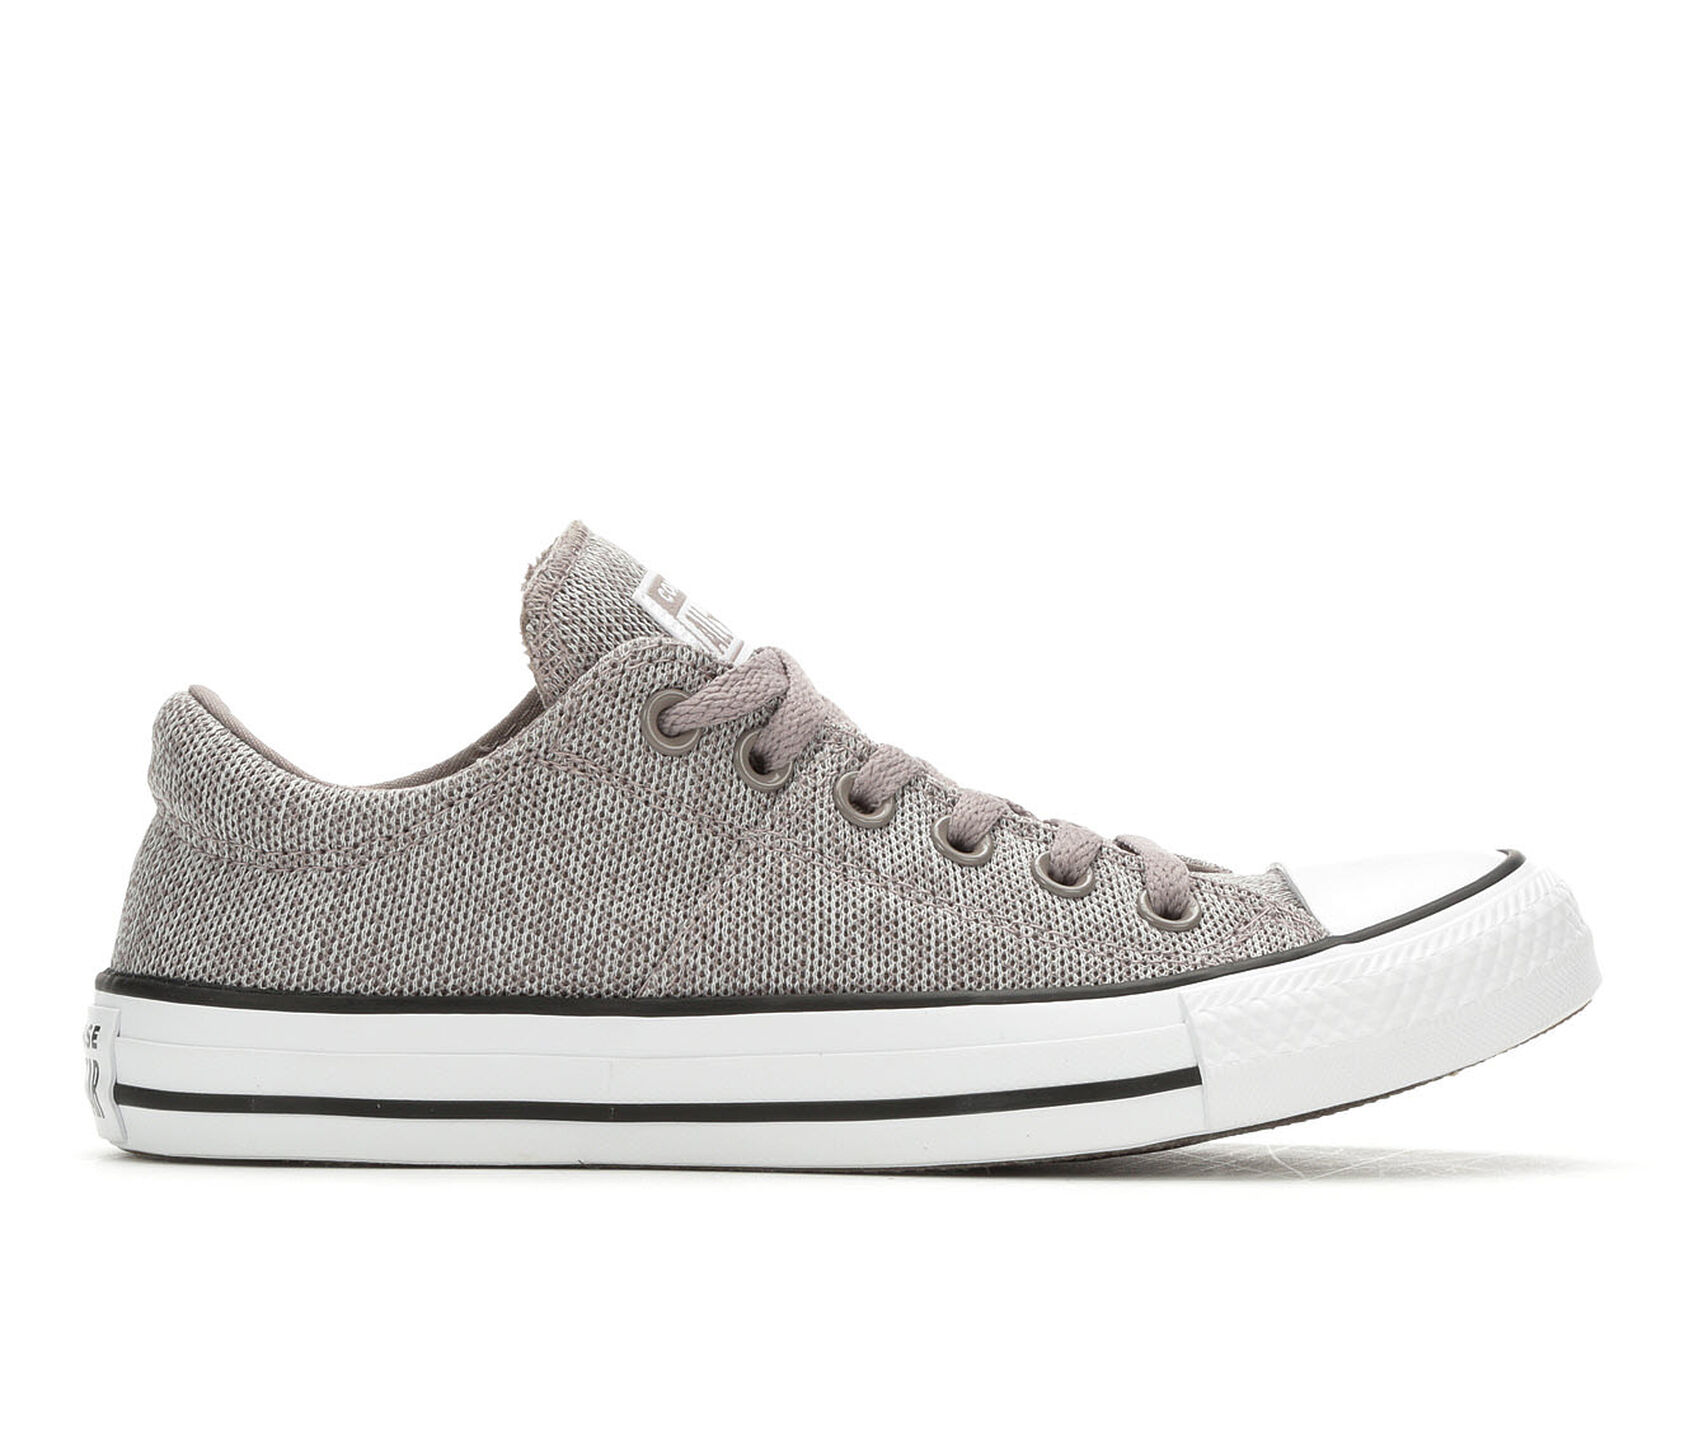 666eccfe0f2b7c ... Converse Madison Salt and Pepper Ox Sneakers. Previous